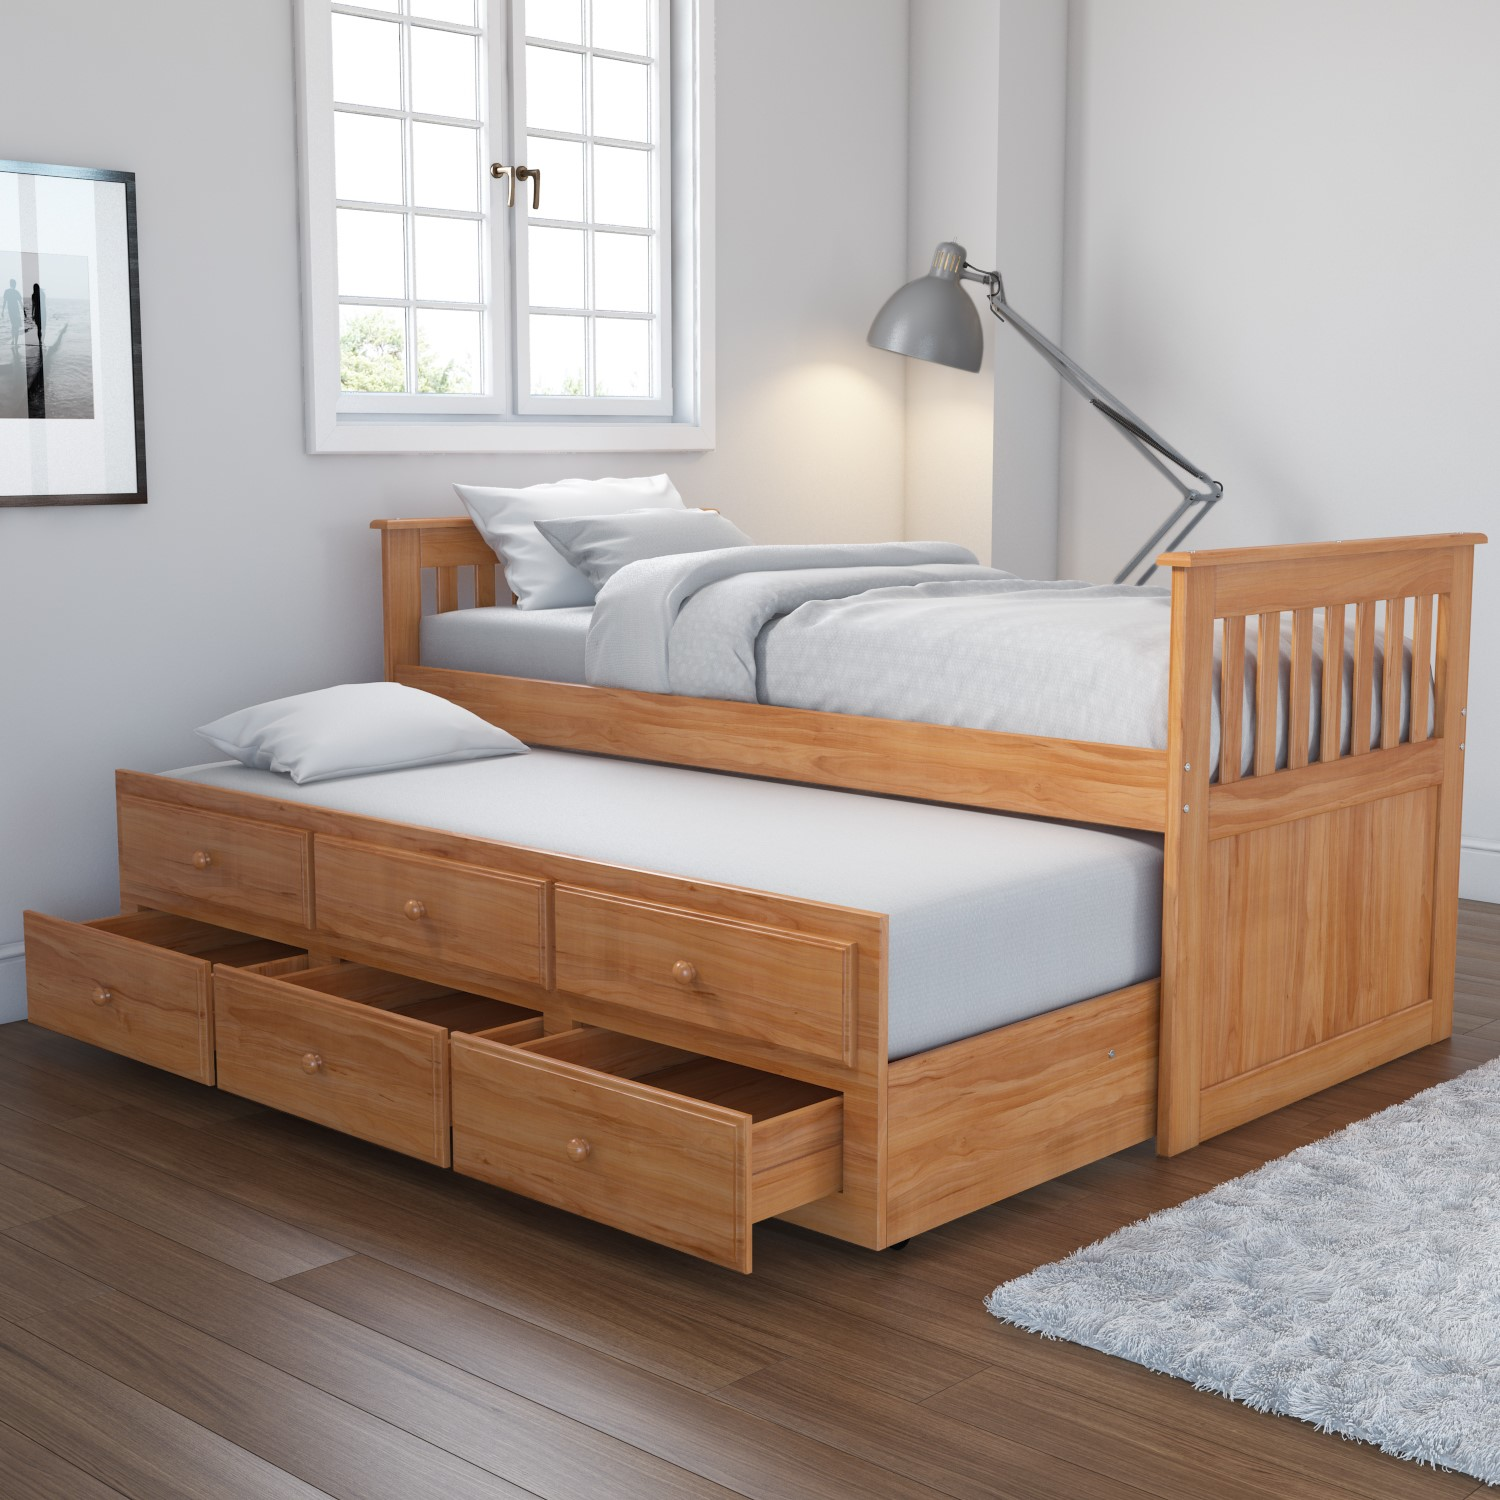 new arrival b754c fa7e3 Oxford Captains Guest Bed With Storage in Pine - Trundle Bed Included